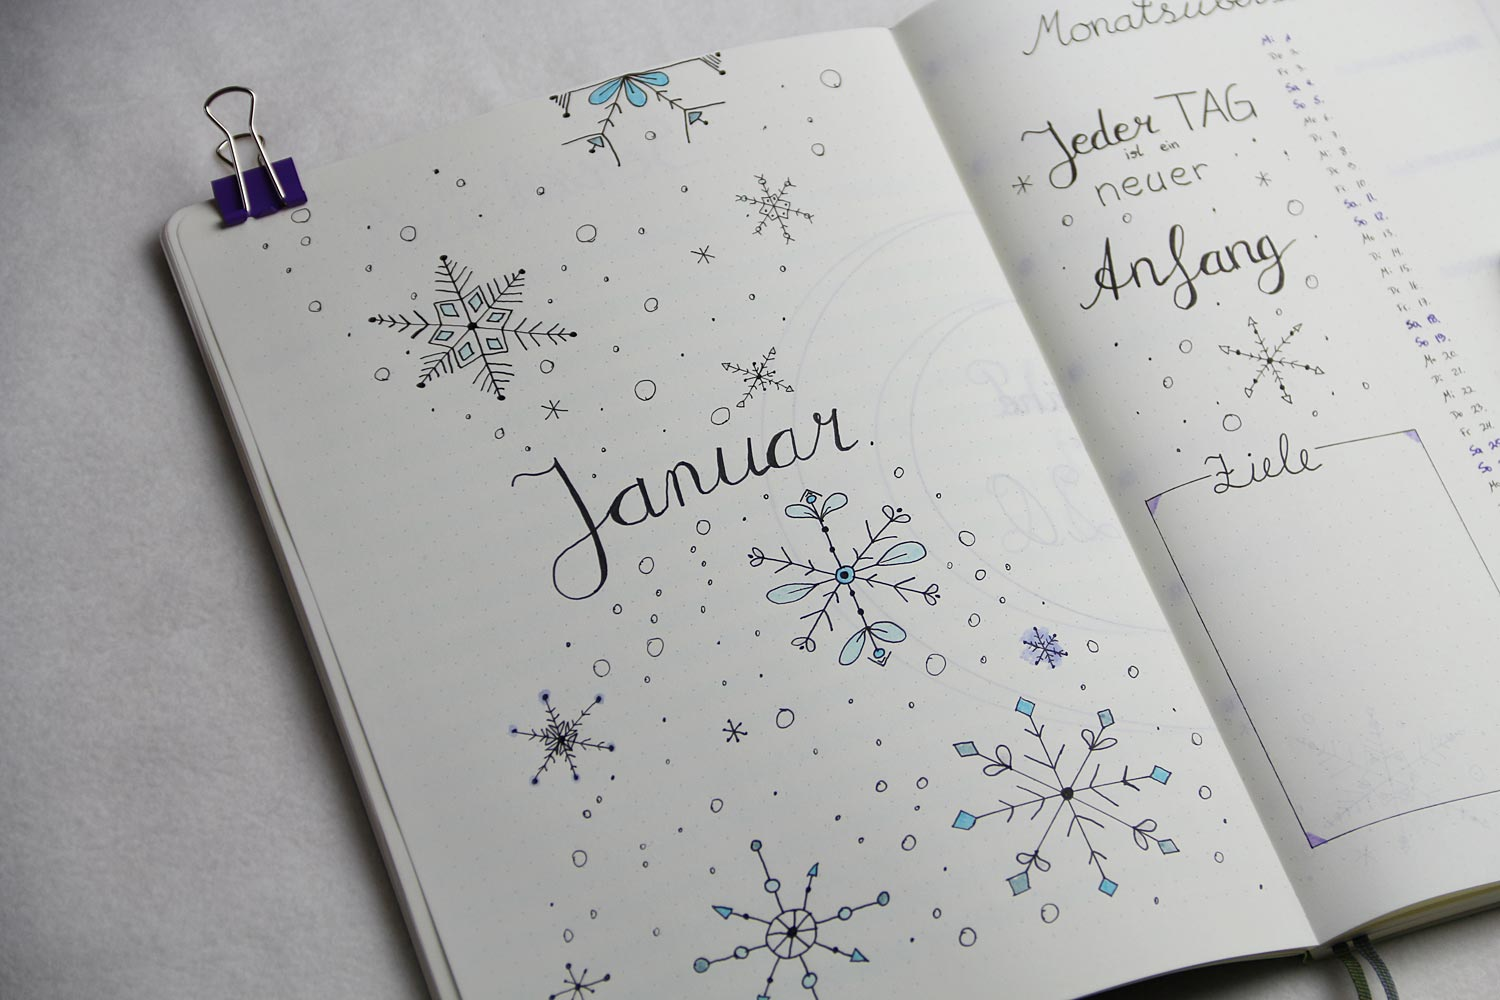 Bullet Journal 2020 - Januar Monatsübersicht links